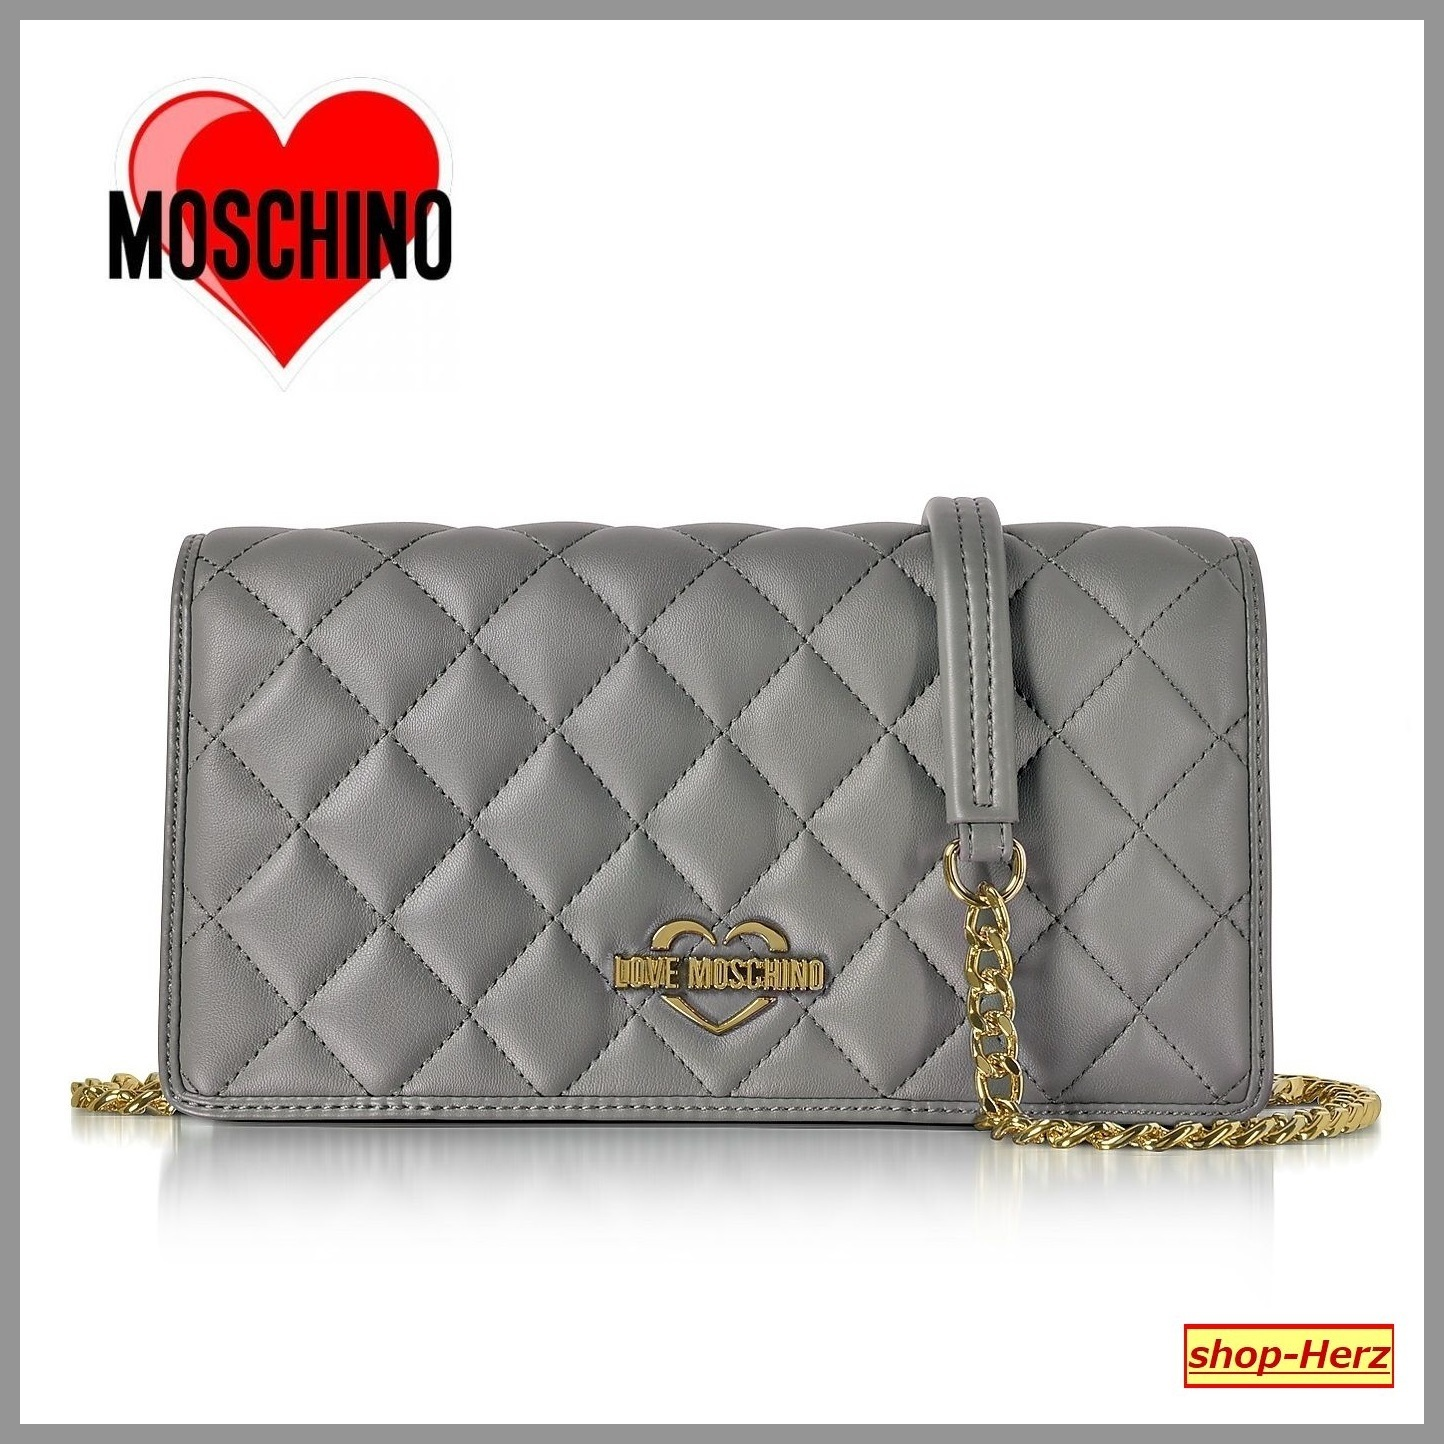 ★Love Moschino★ Grey Superquilted クラッチバッグ 関税込